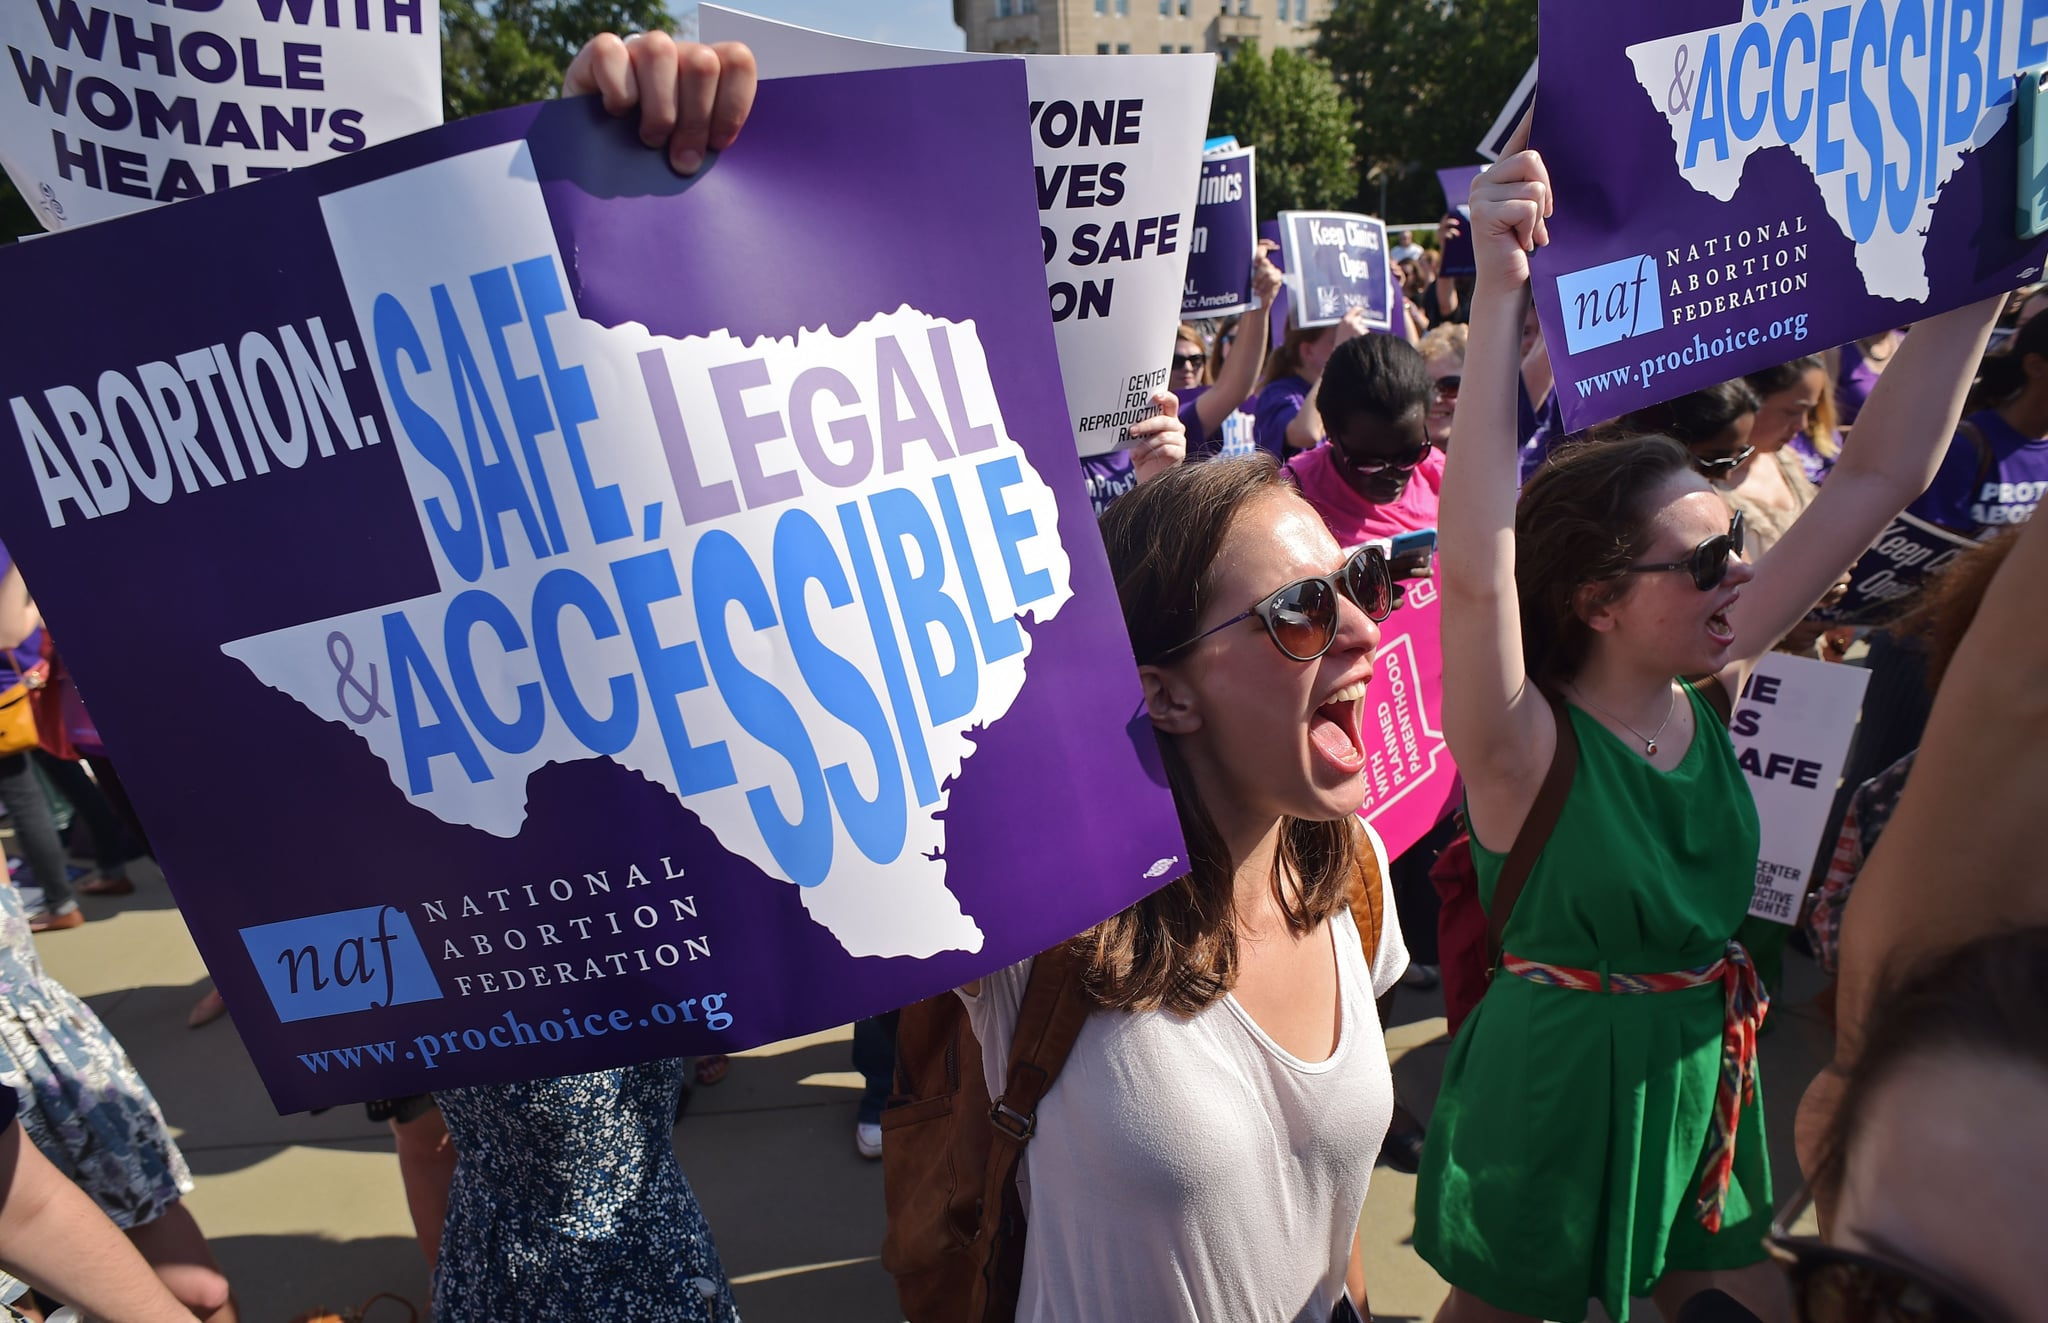 Abortion rights activists hold placards and chant outside of the US Supreme Court ahead of a ruling on abortion clinic restrictions on June 27, 2016 in Washington, DC.In a case with far-reaching implications for millions of women across the United States, the court ruled 5-3 to strike down measures which activists say have forced more than half of Texas's abortion clinics to close. / AFP / MANDEL NGAN        (Photo credit should read MANDEL NGAN/AFP via Getty Images)